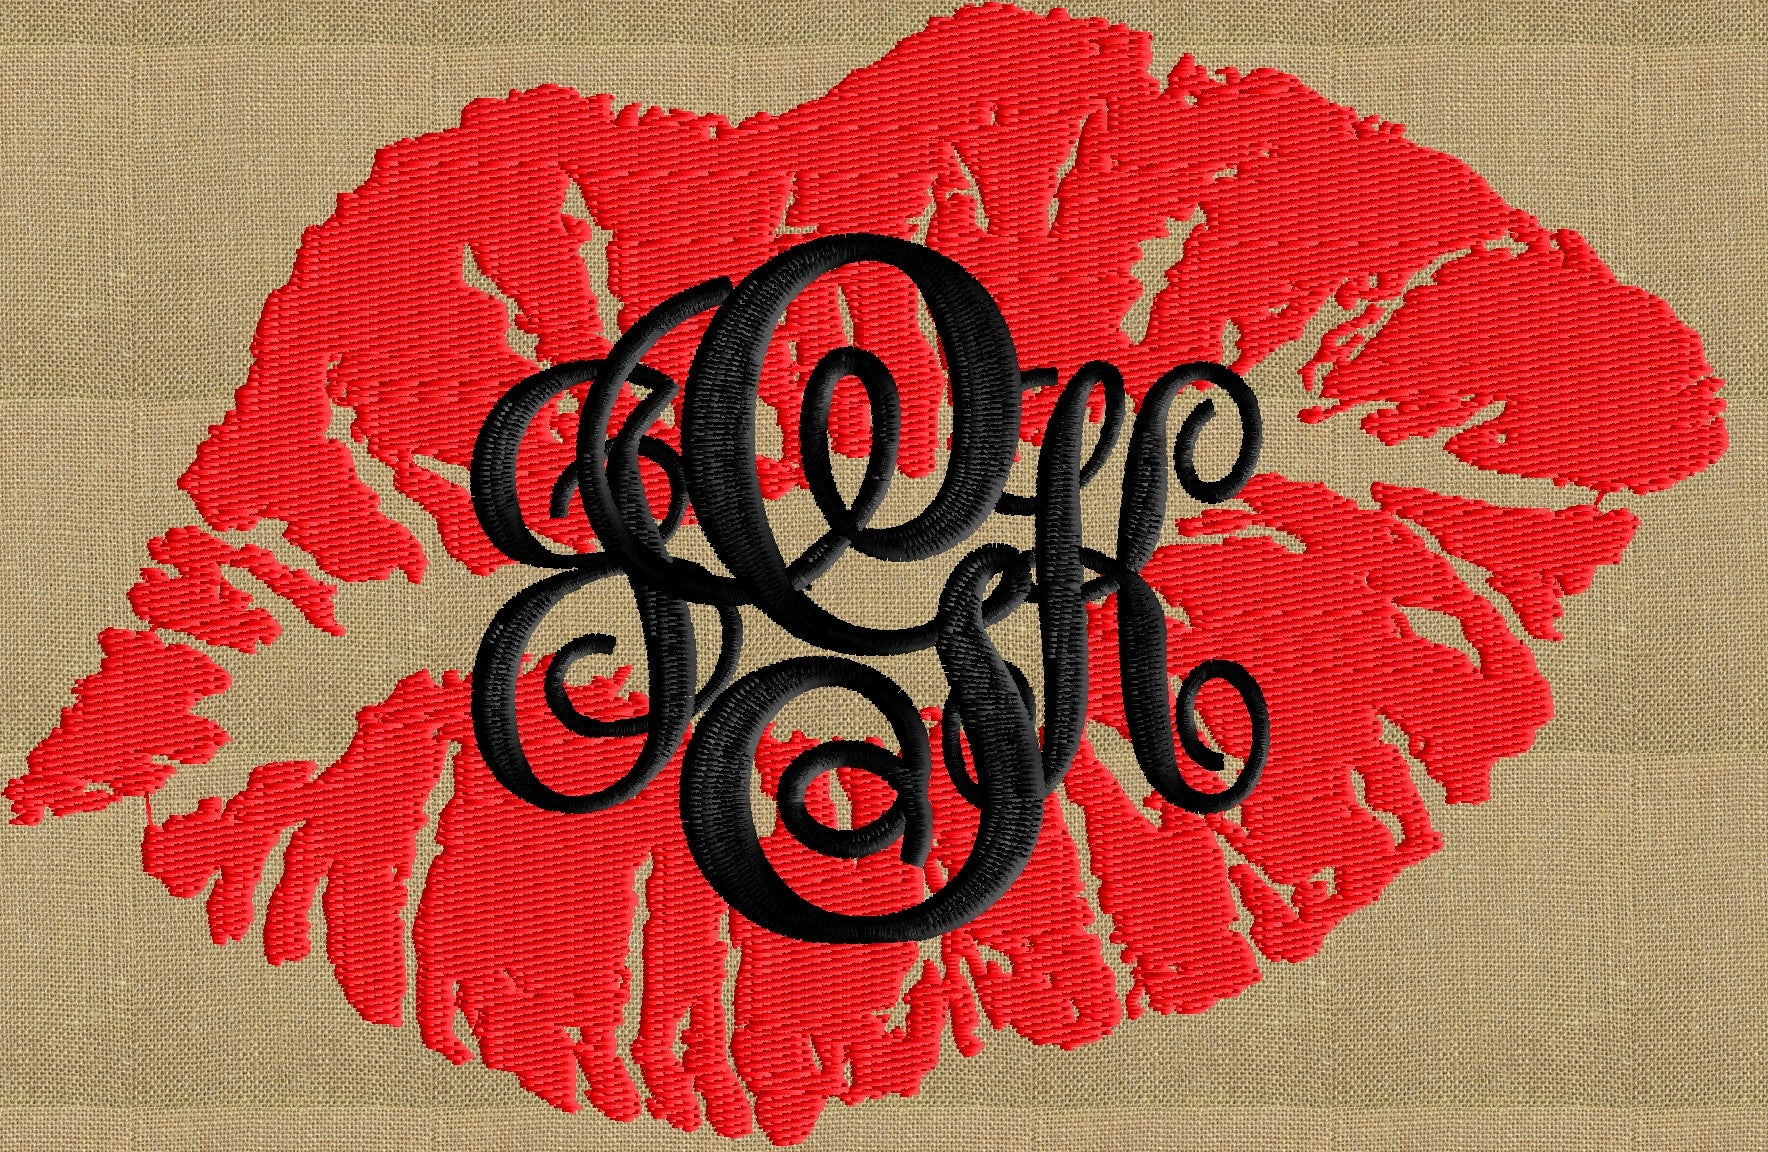 Lips Kiss Font Frame Monogram Embroidery Design - Font not included - Instant download - Hus Dst Exp Vp3 Jef Pes formats - Lip Print